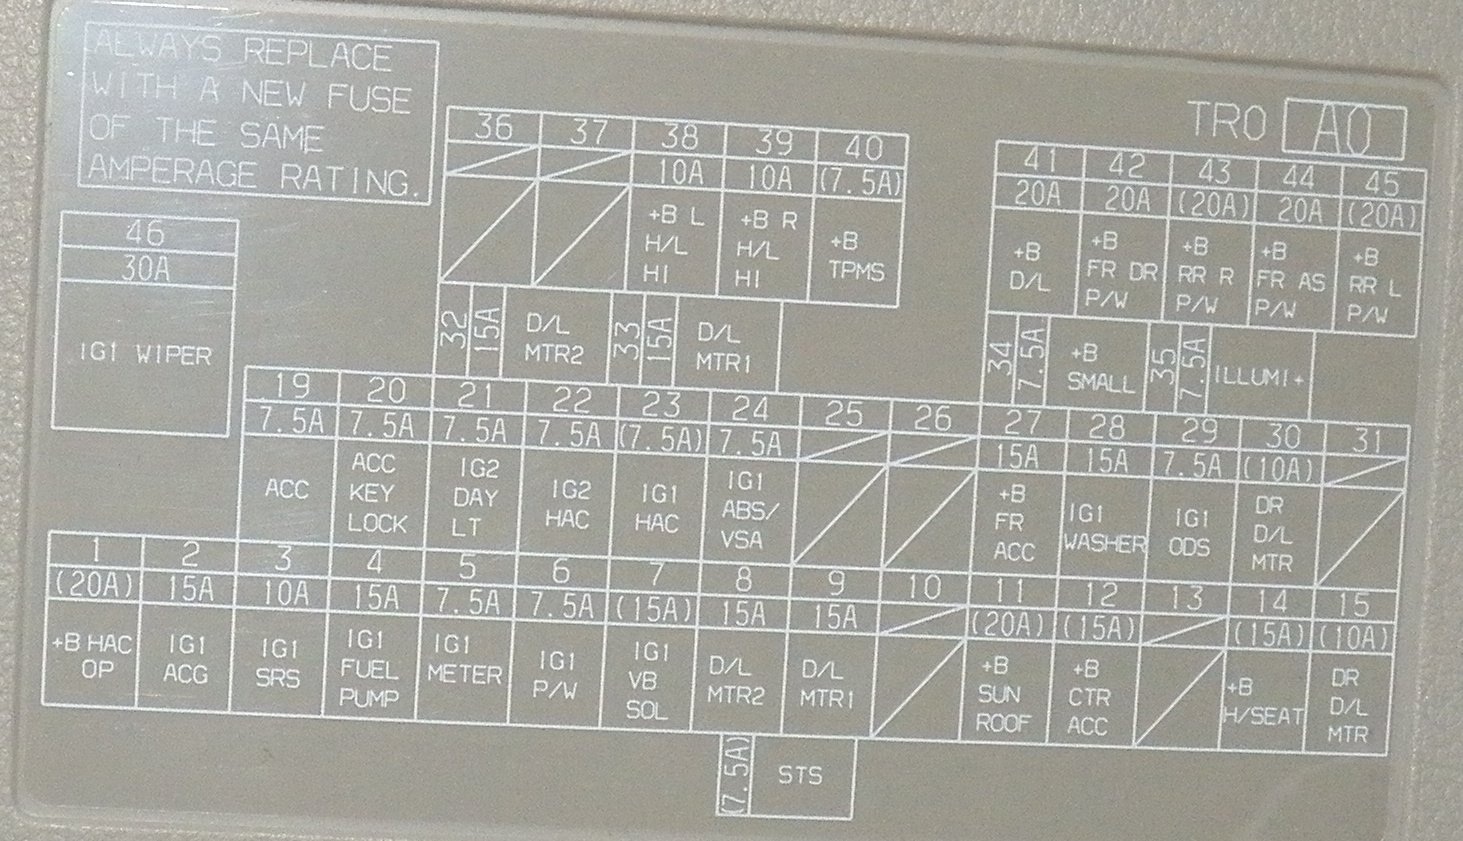 Diagram?Pics? for Fuse box-100_0708.jpg